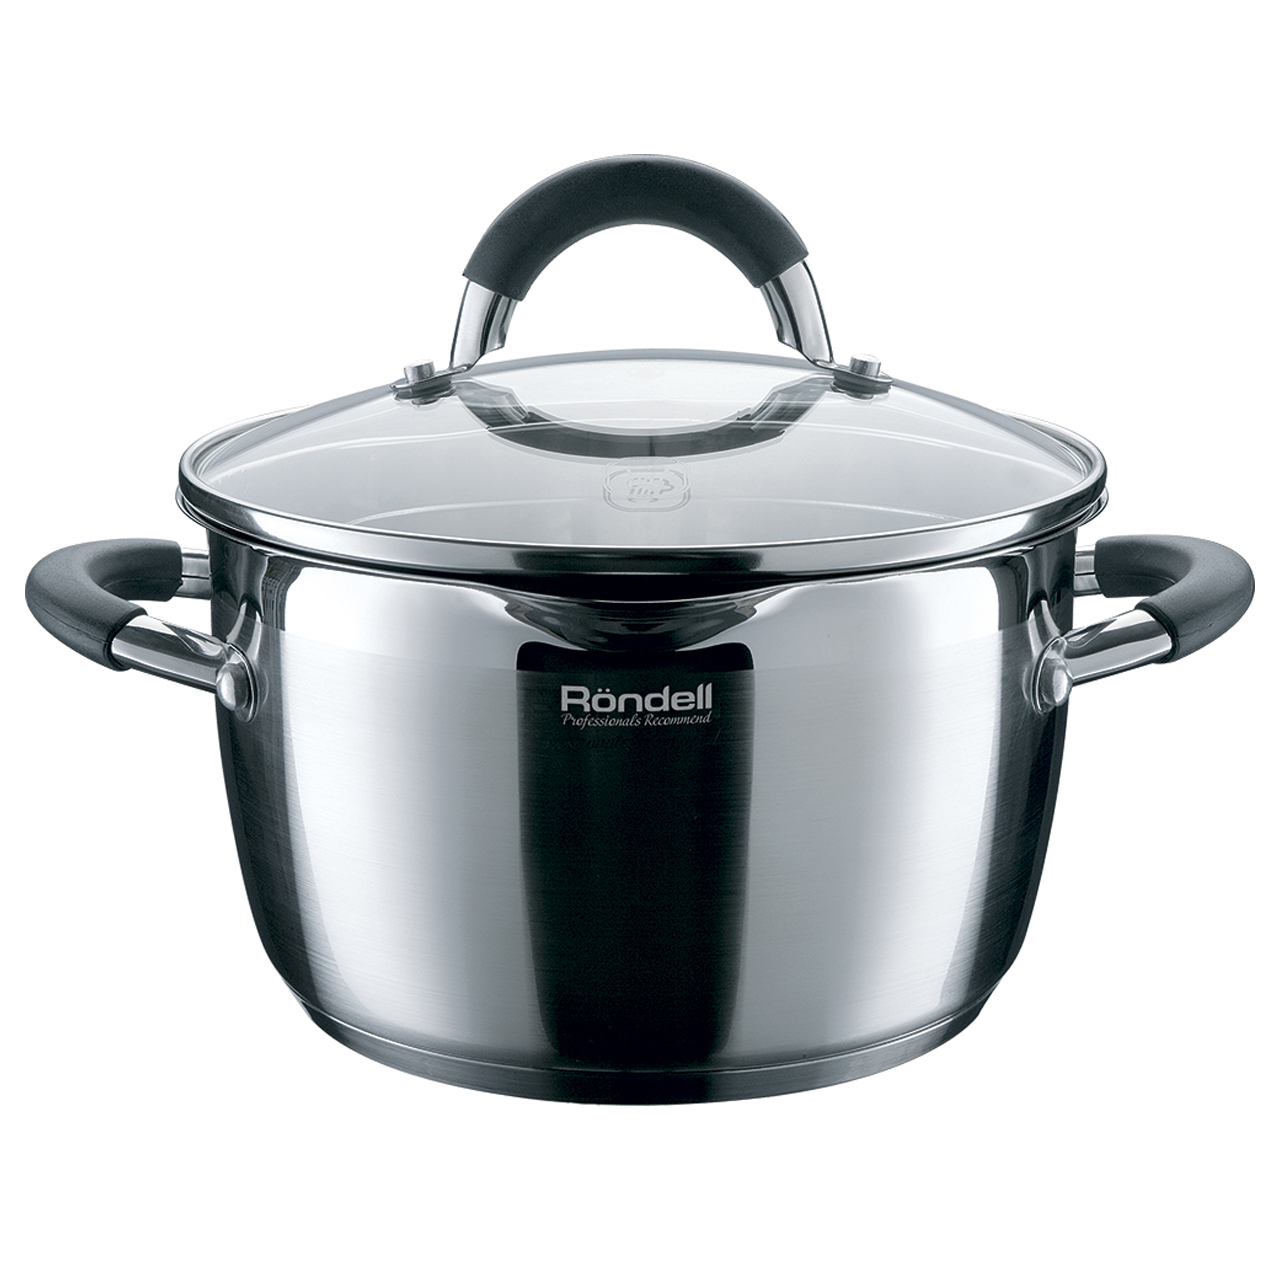 Фото - Saucepan with lid Rondell Flamme RDS-025 (Diameter 24 cm, Volume 5.7 L stainless steel, suitable for all types of plates) saucepan with lid eurostek es 1007 volume 4 5 liter diameter 22 cm пятислойное bottom suitable for all types of plates